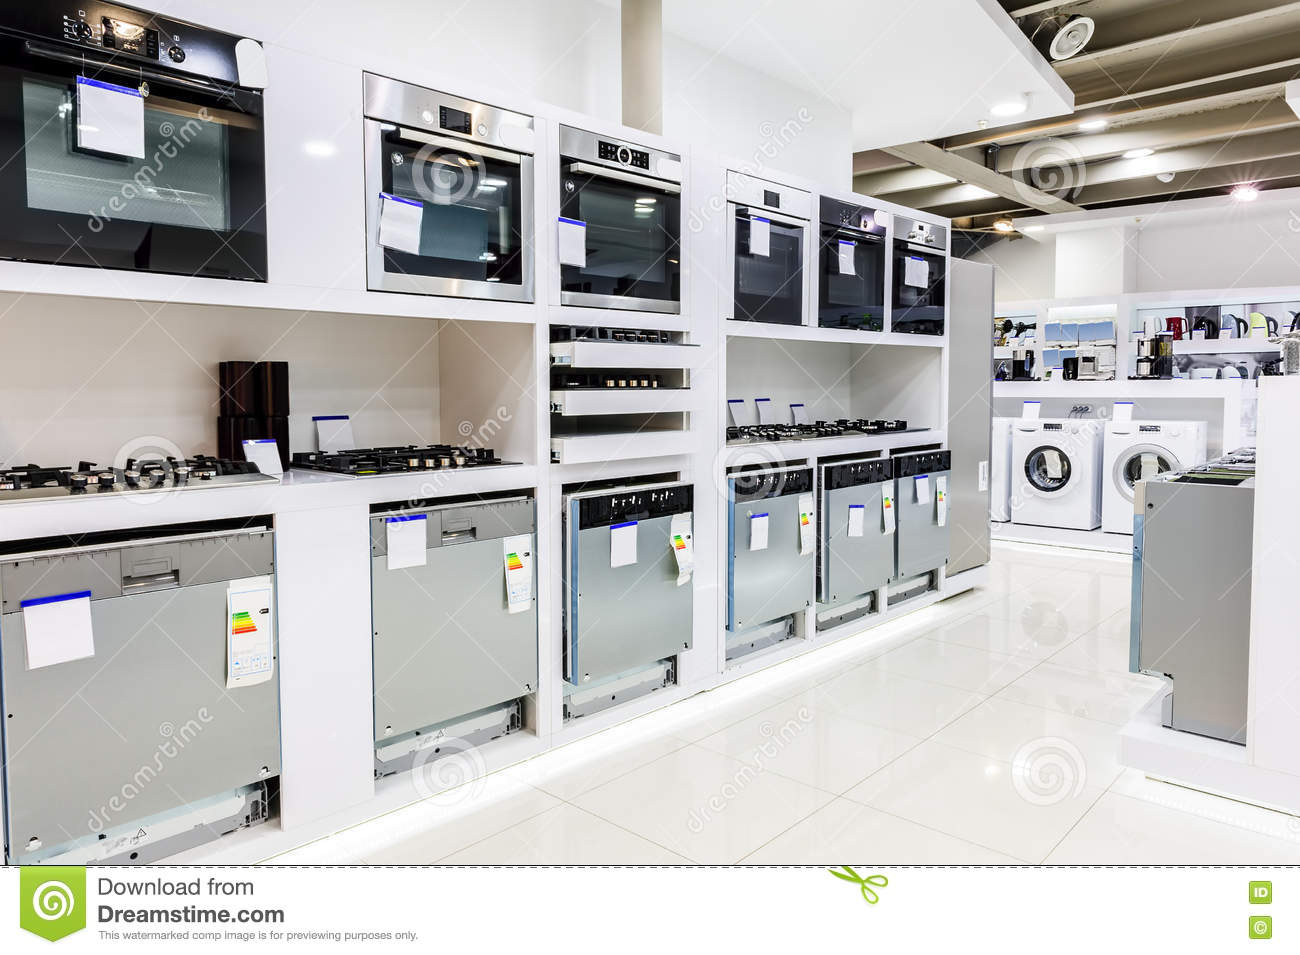 Home Appliance In The Store Stock Photo - Image of housework ...